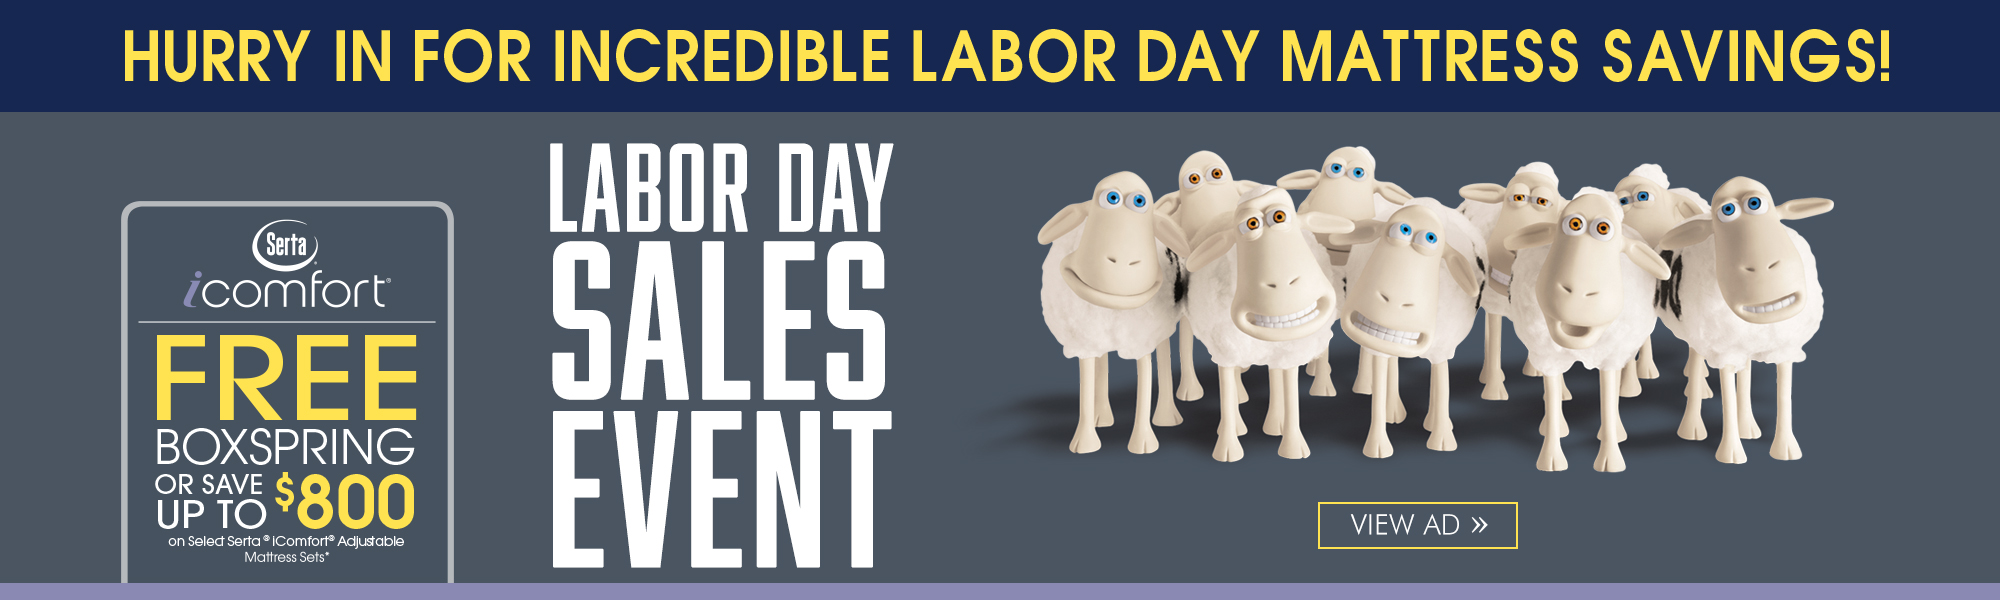 Serta iComfort Box Spring Labor Day Special